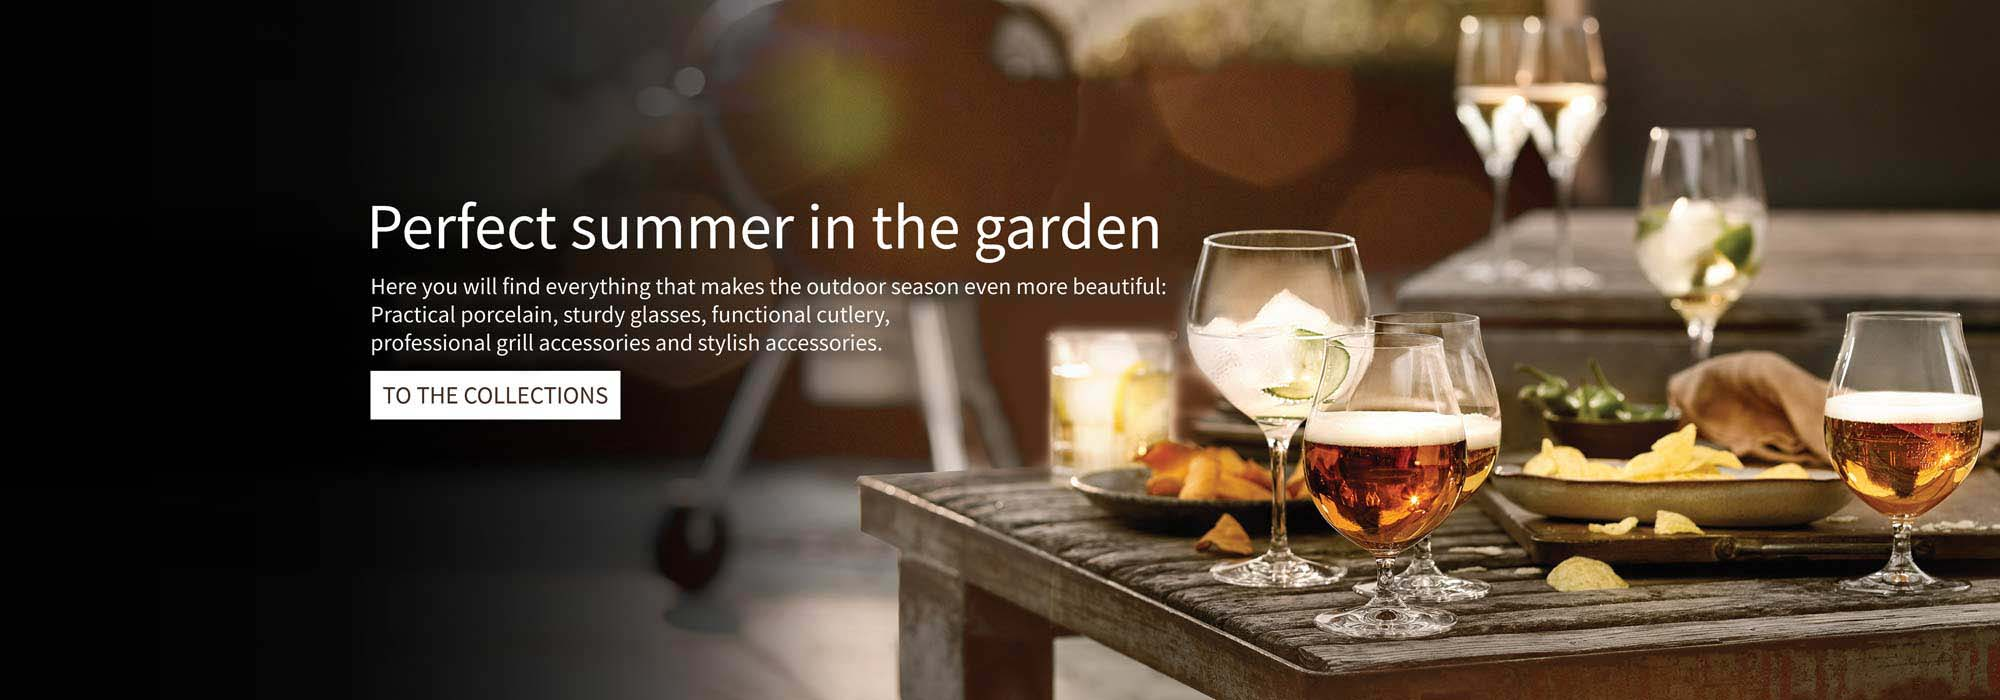 Perfect summer in the garden